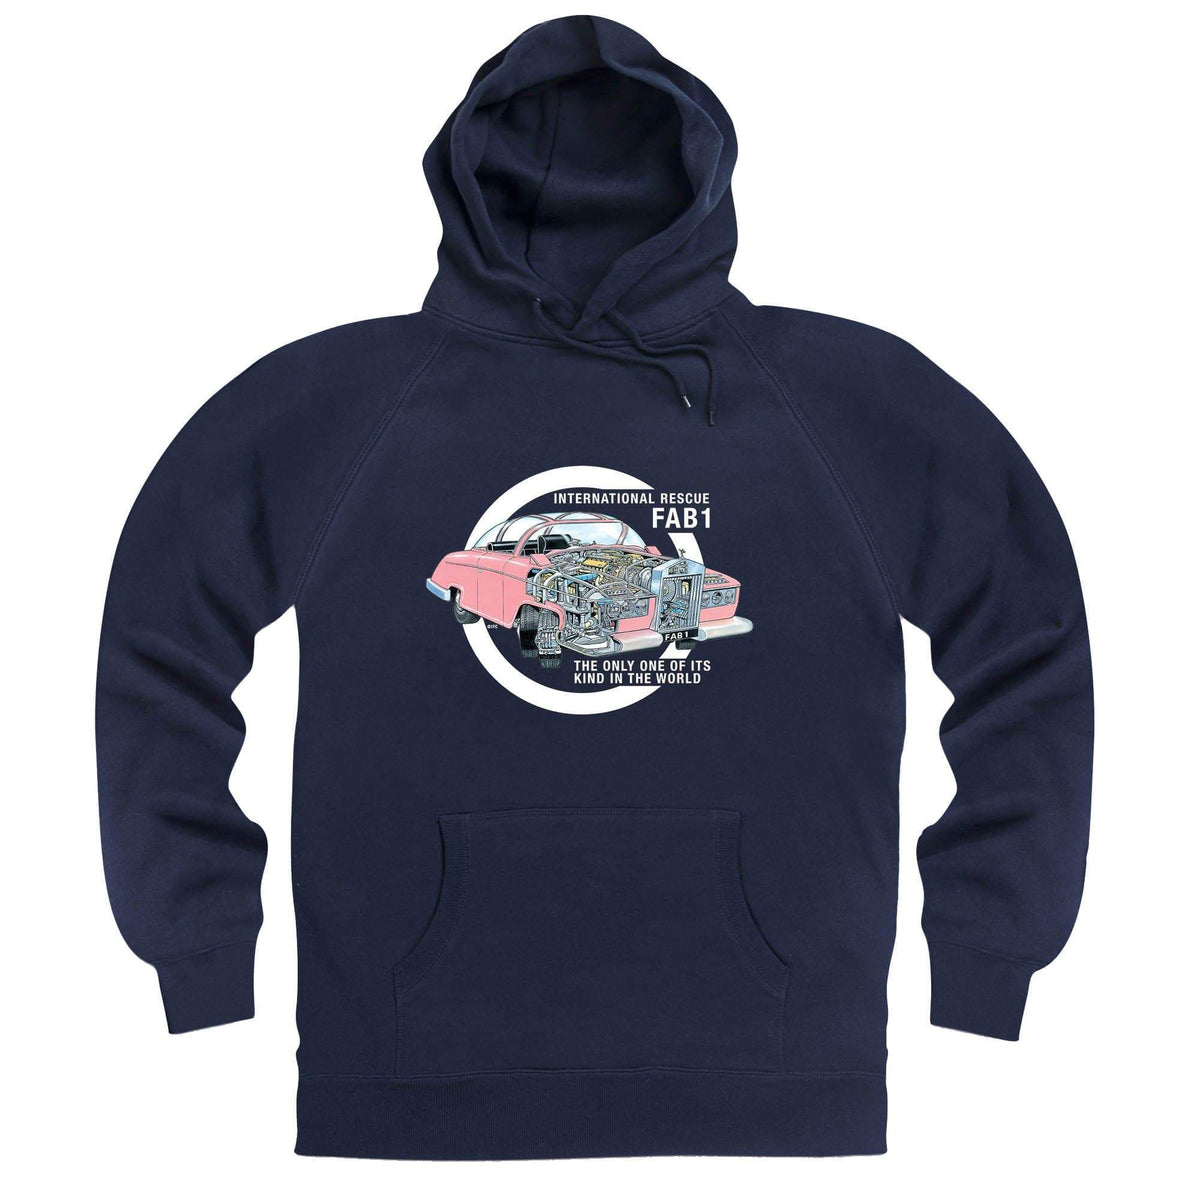 Thunderbirds: Thunderbird FAB 1 Cutaway Hoodie [Official & Exclusive] - The Gerry Anderson Store